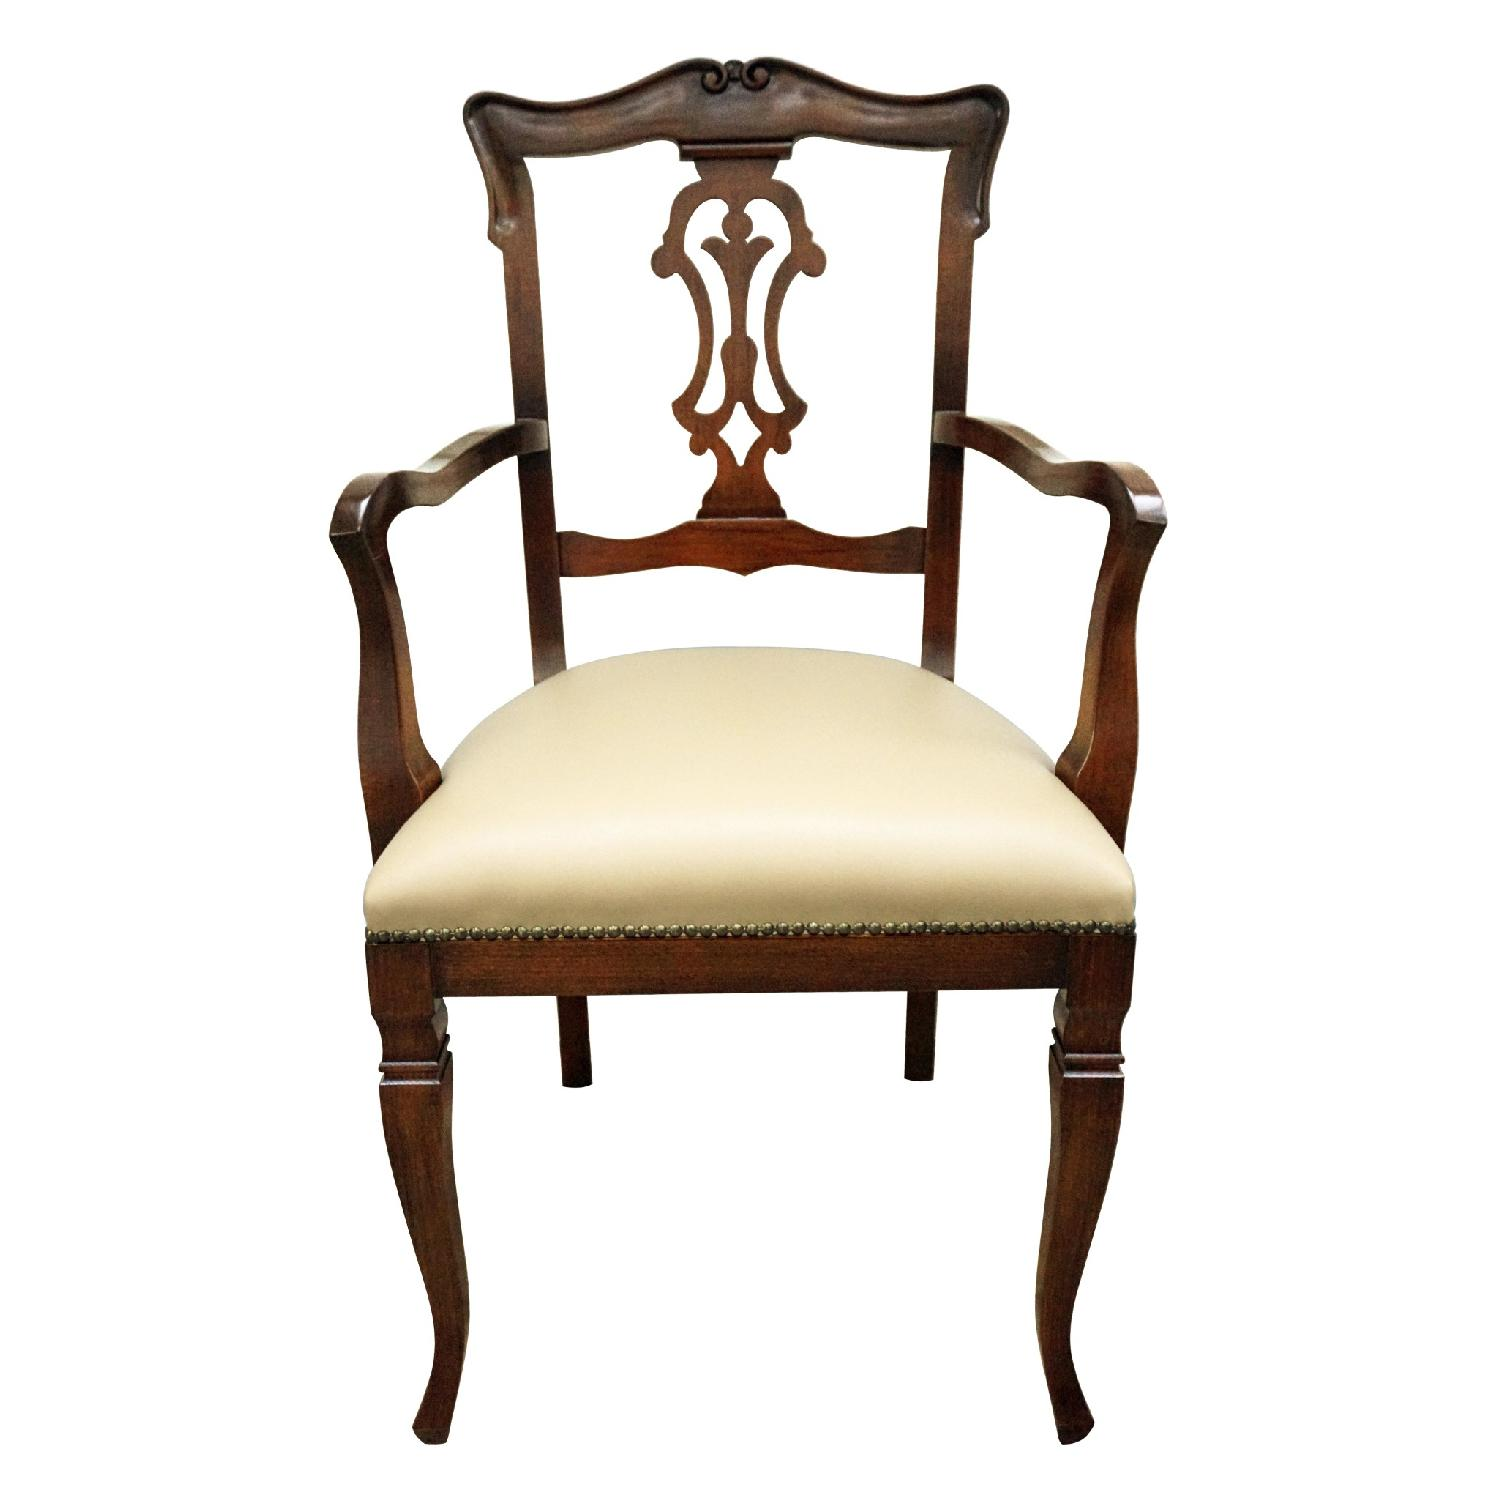 Italian Dining Room/Arm Chair